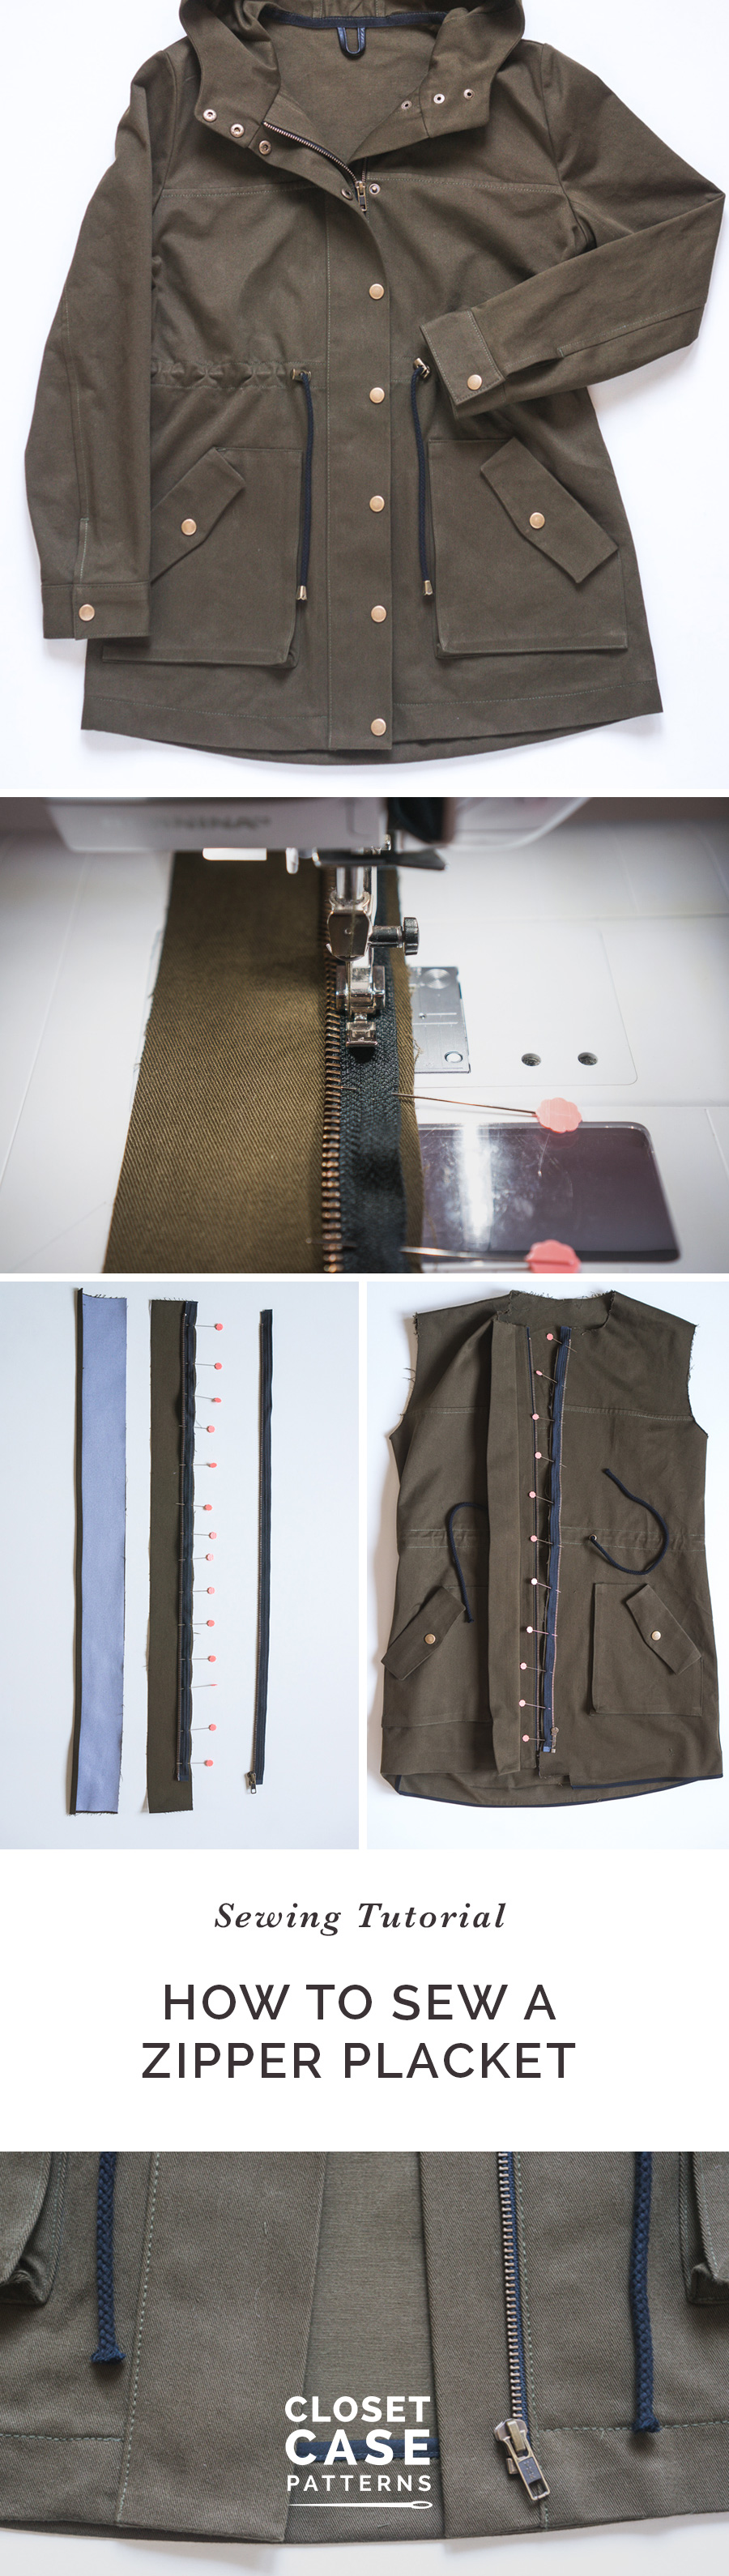 Learn how to sew a zipper placket with our in-depth step by step sewing tutorial!